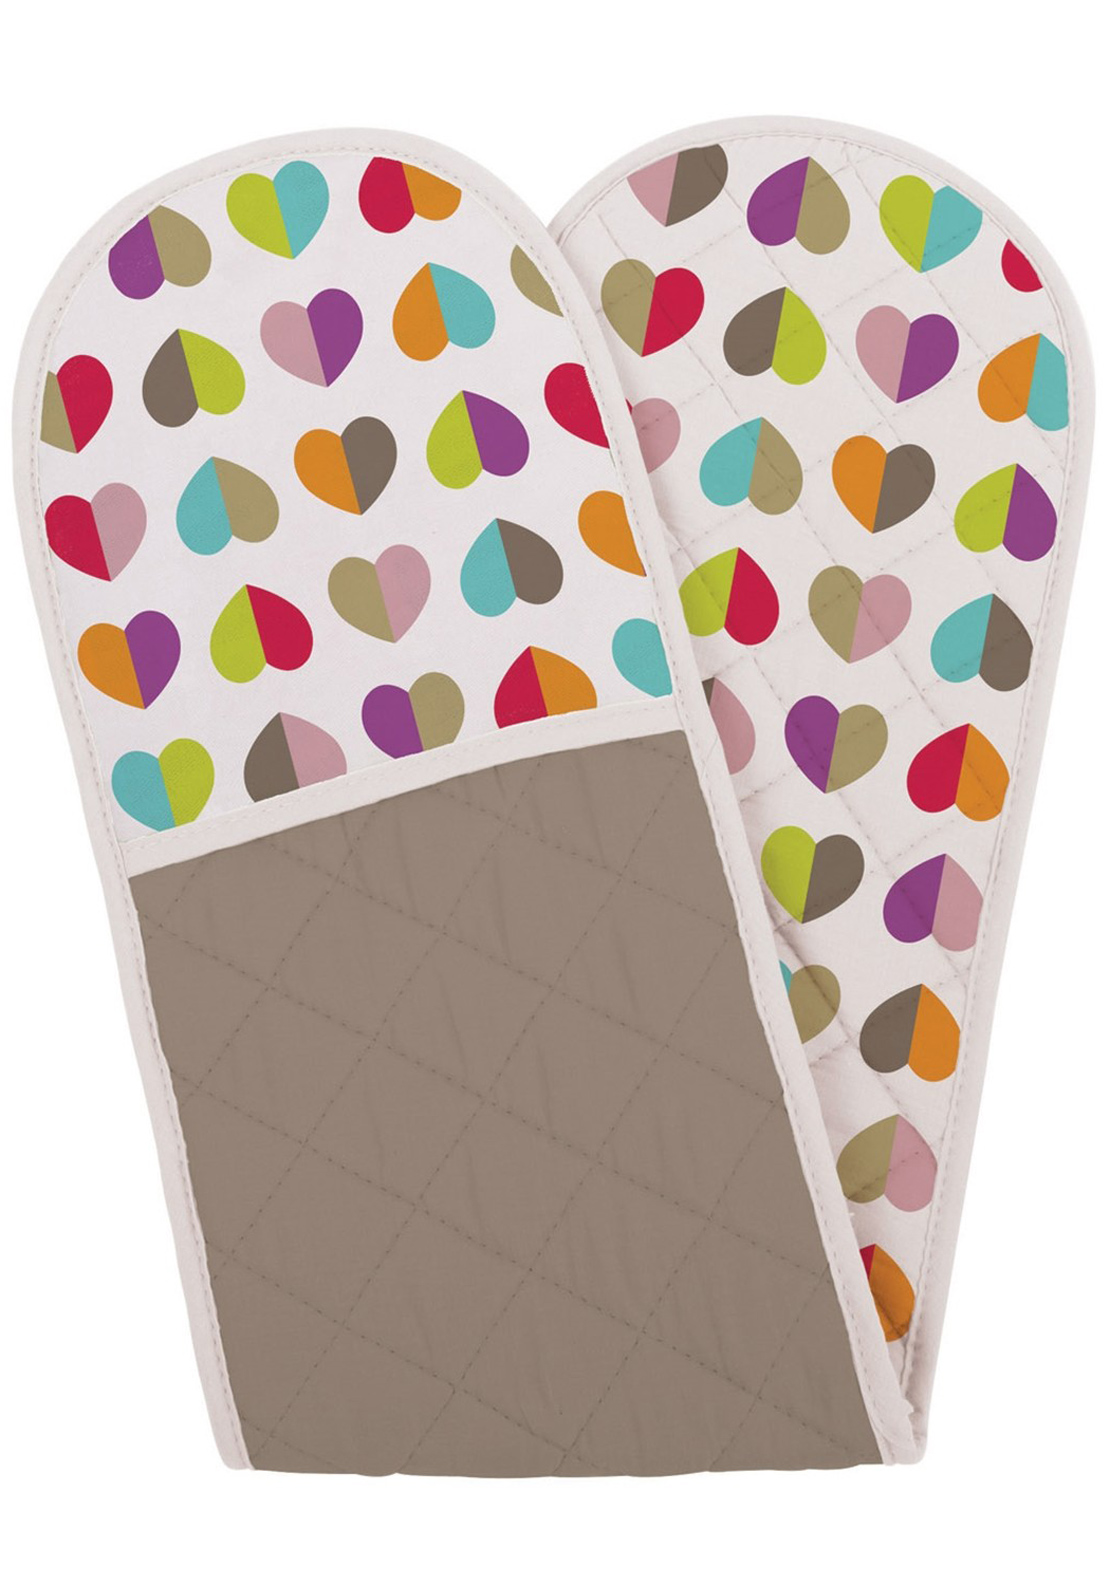 Beau & Elliot Confetti Heart Pink Oven Gloves, Multi-Coloured